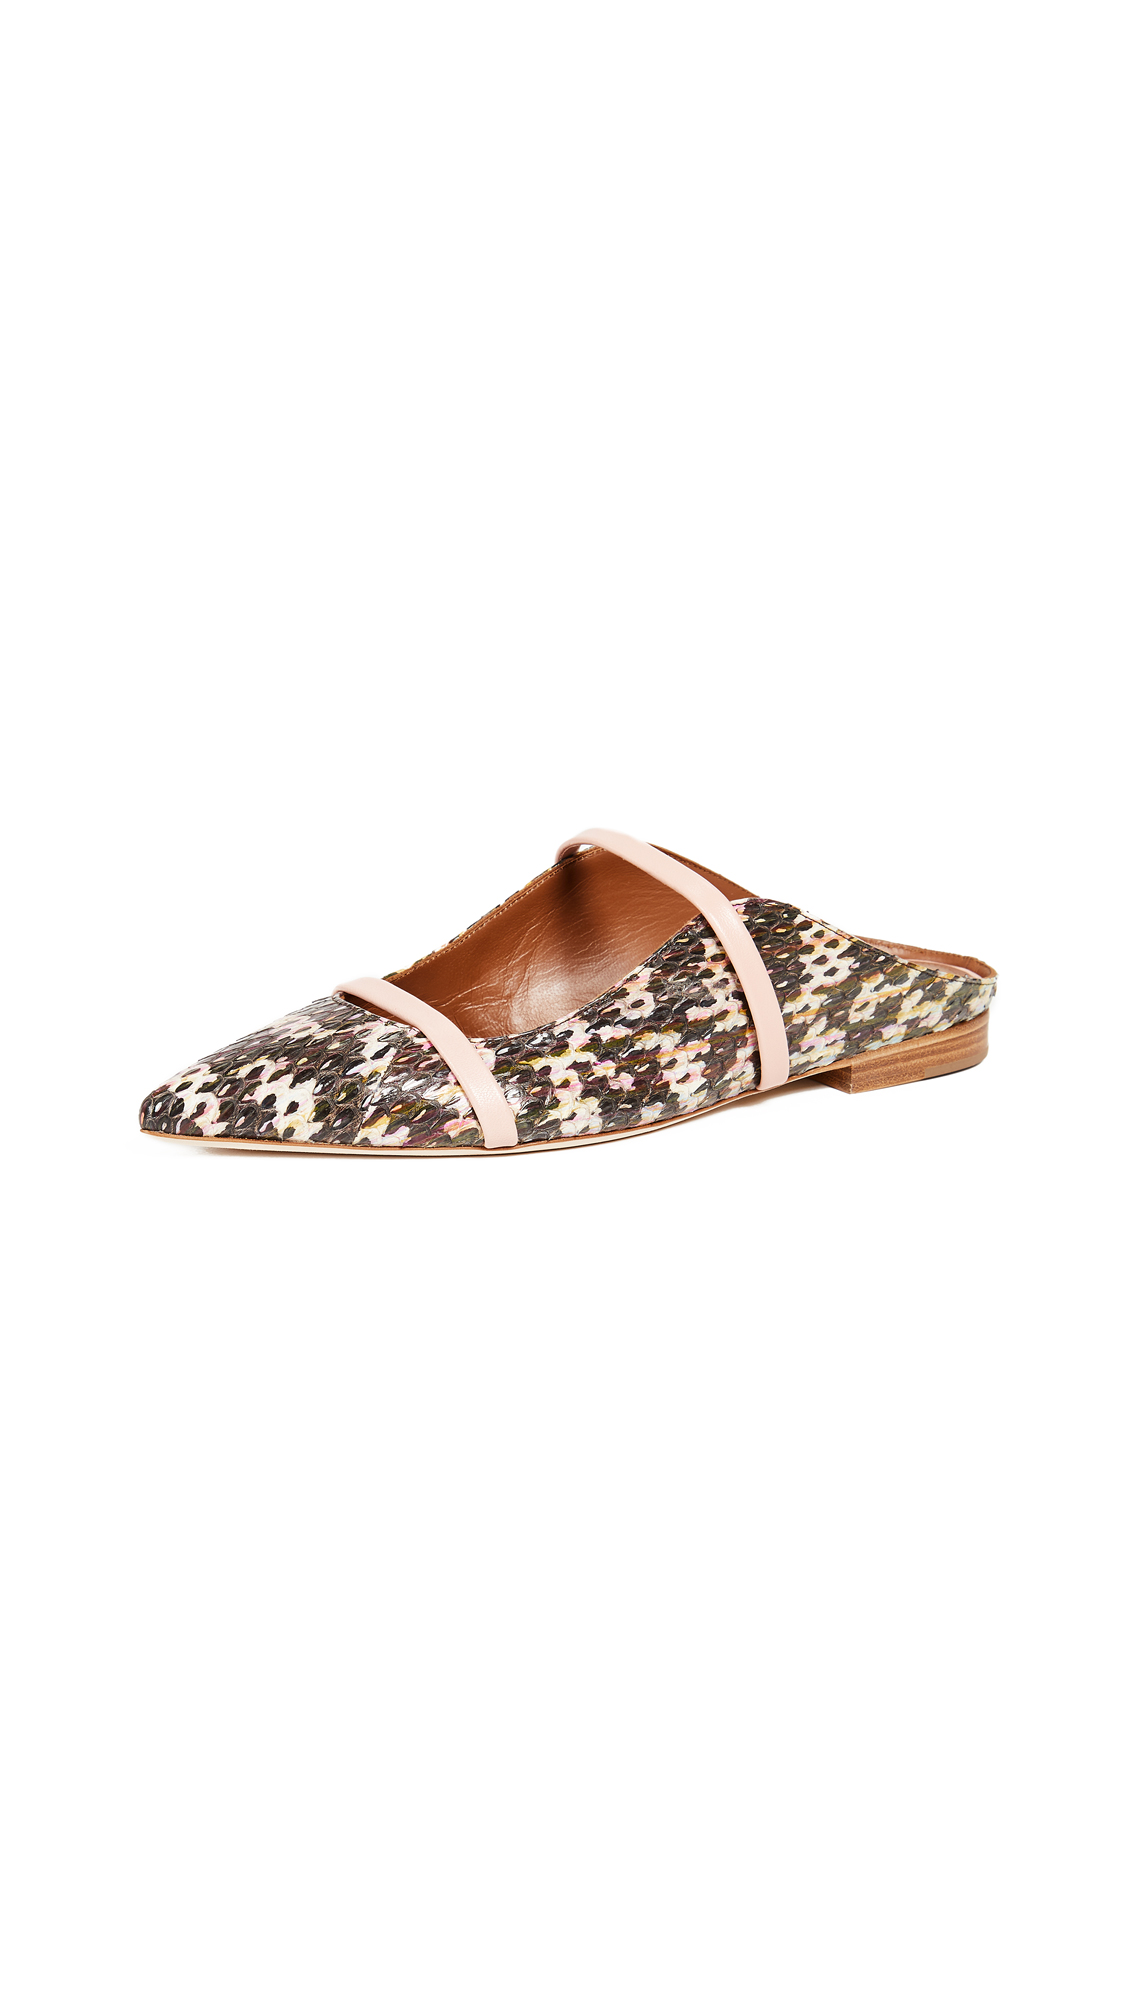 Malone Souliers Snakeskin Maureen Flats - Multi Color/Peonia